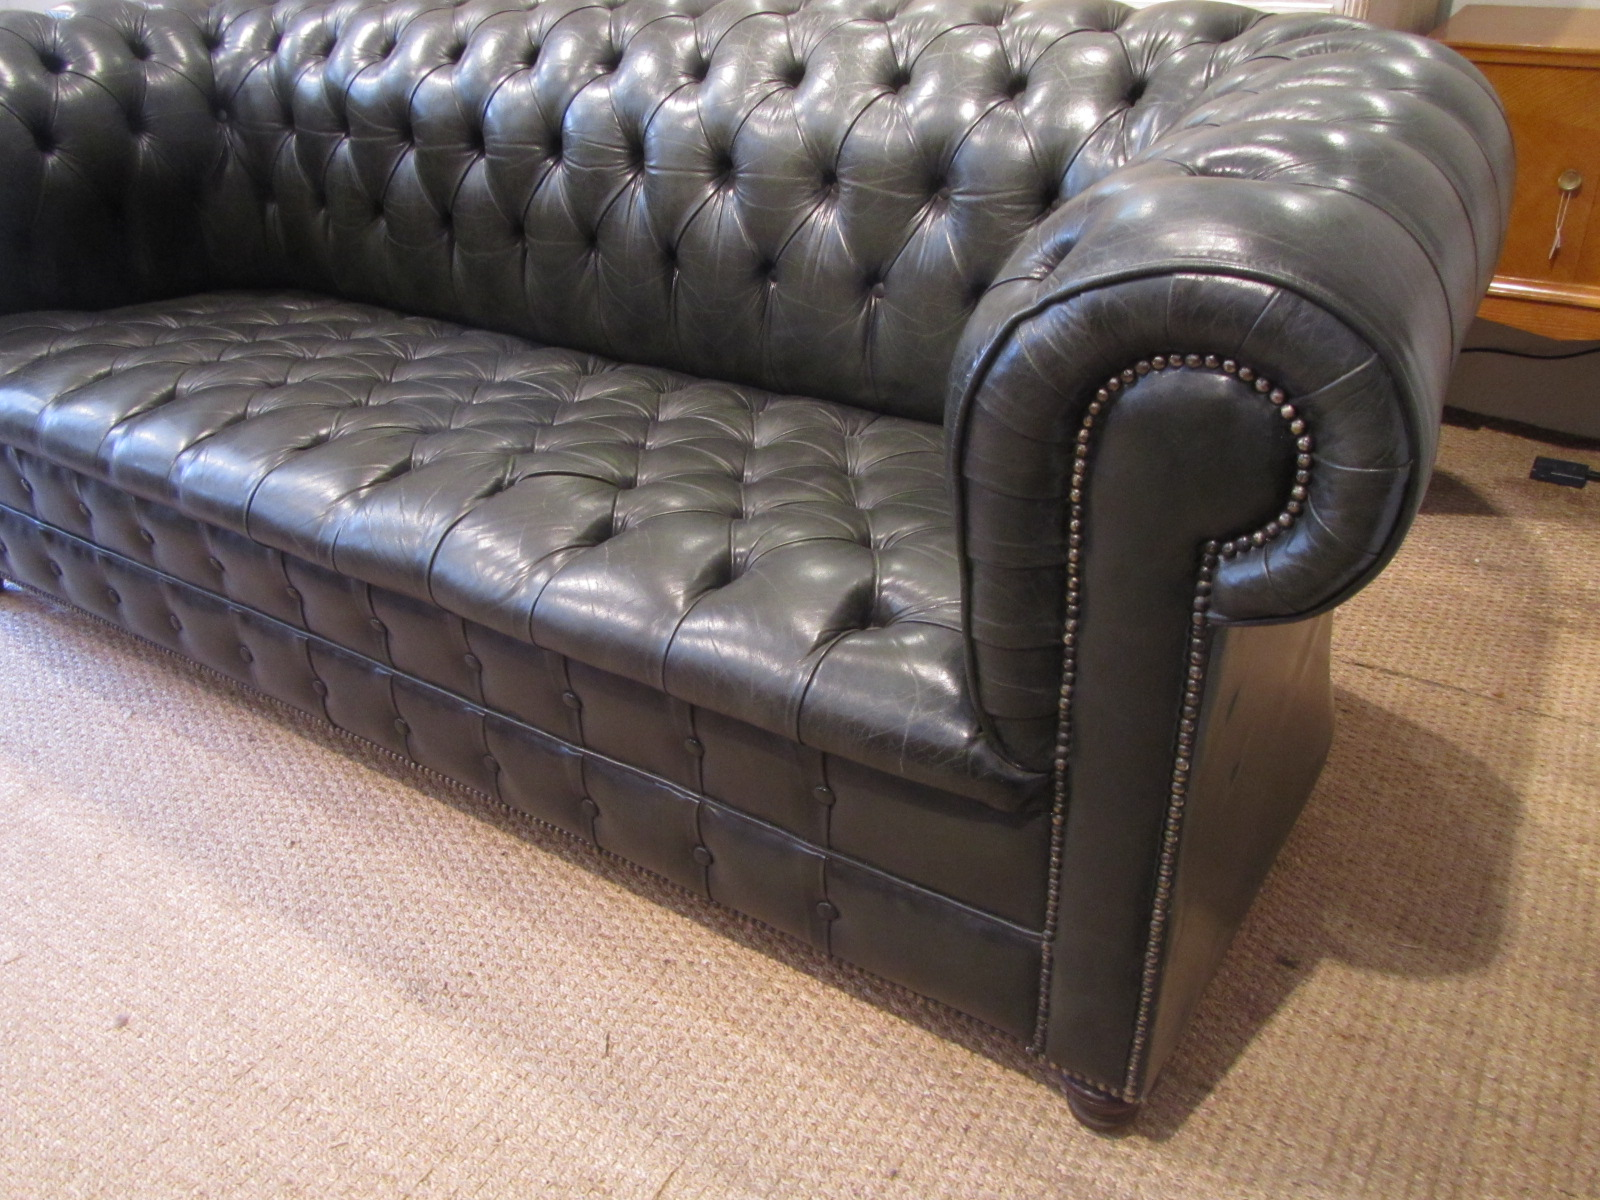 A Fully Buttoned Leather Chesterfield Sofa Decorative Collective